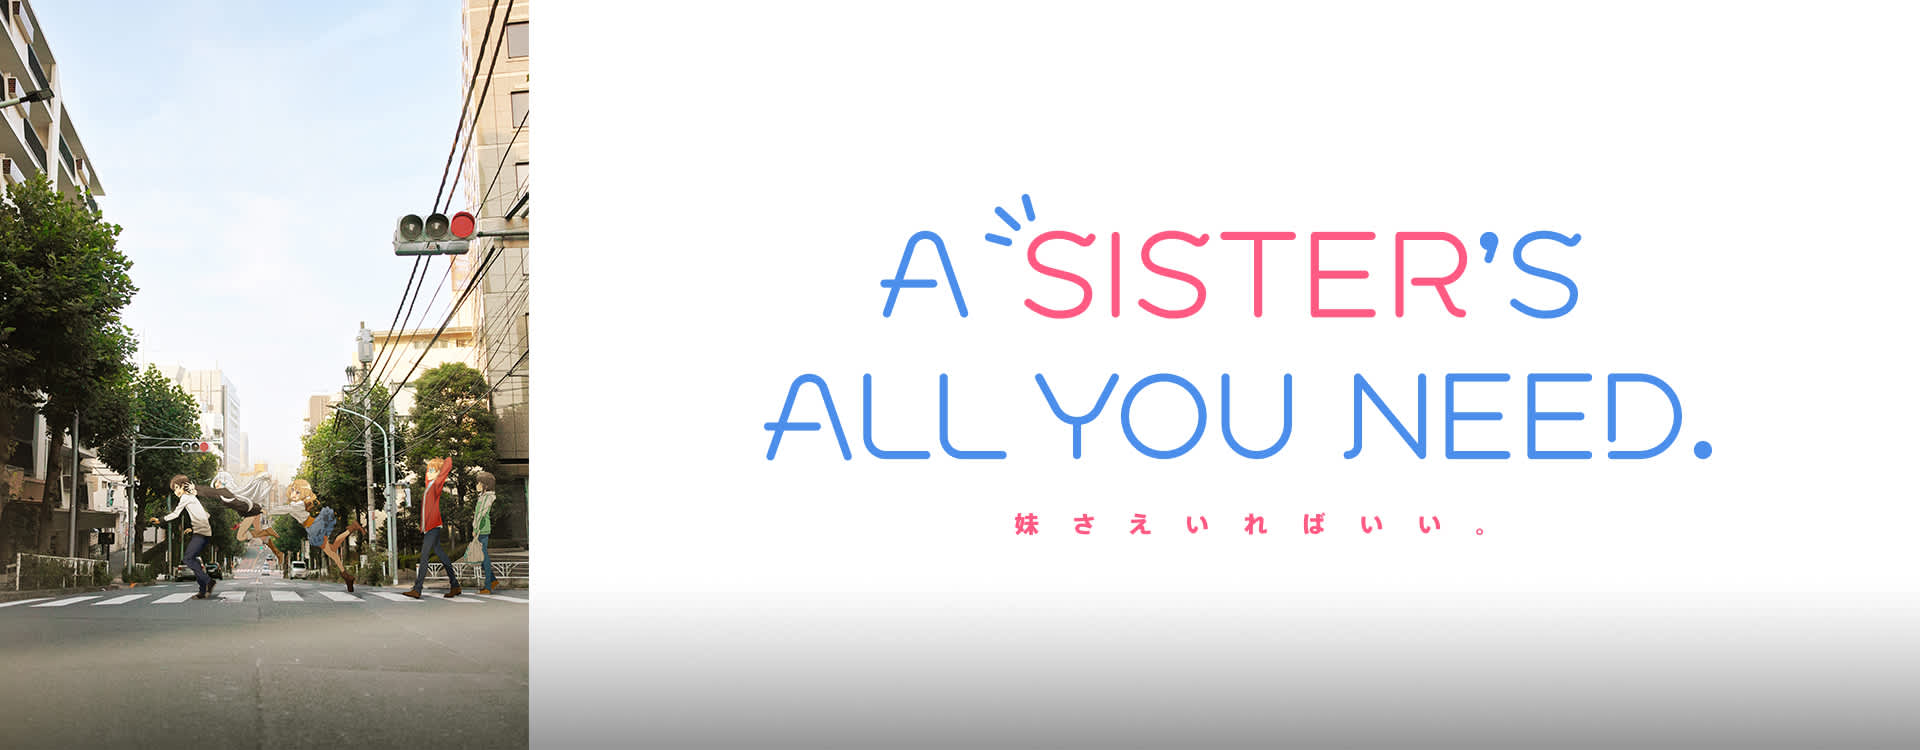 A Sister's All You Need.